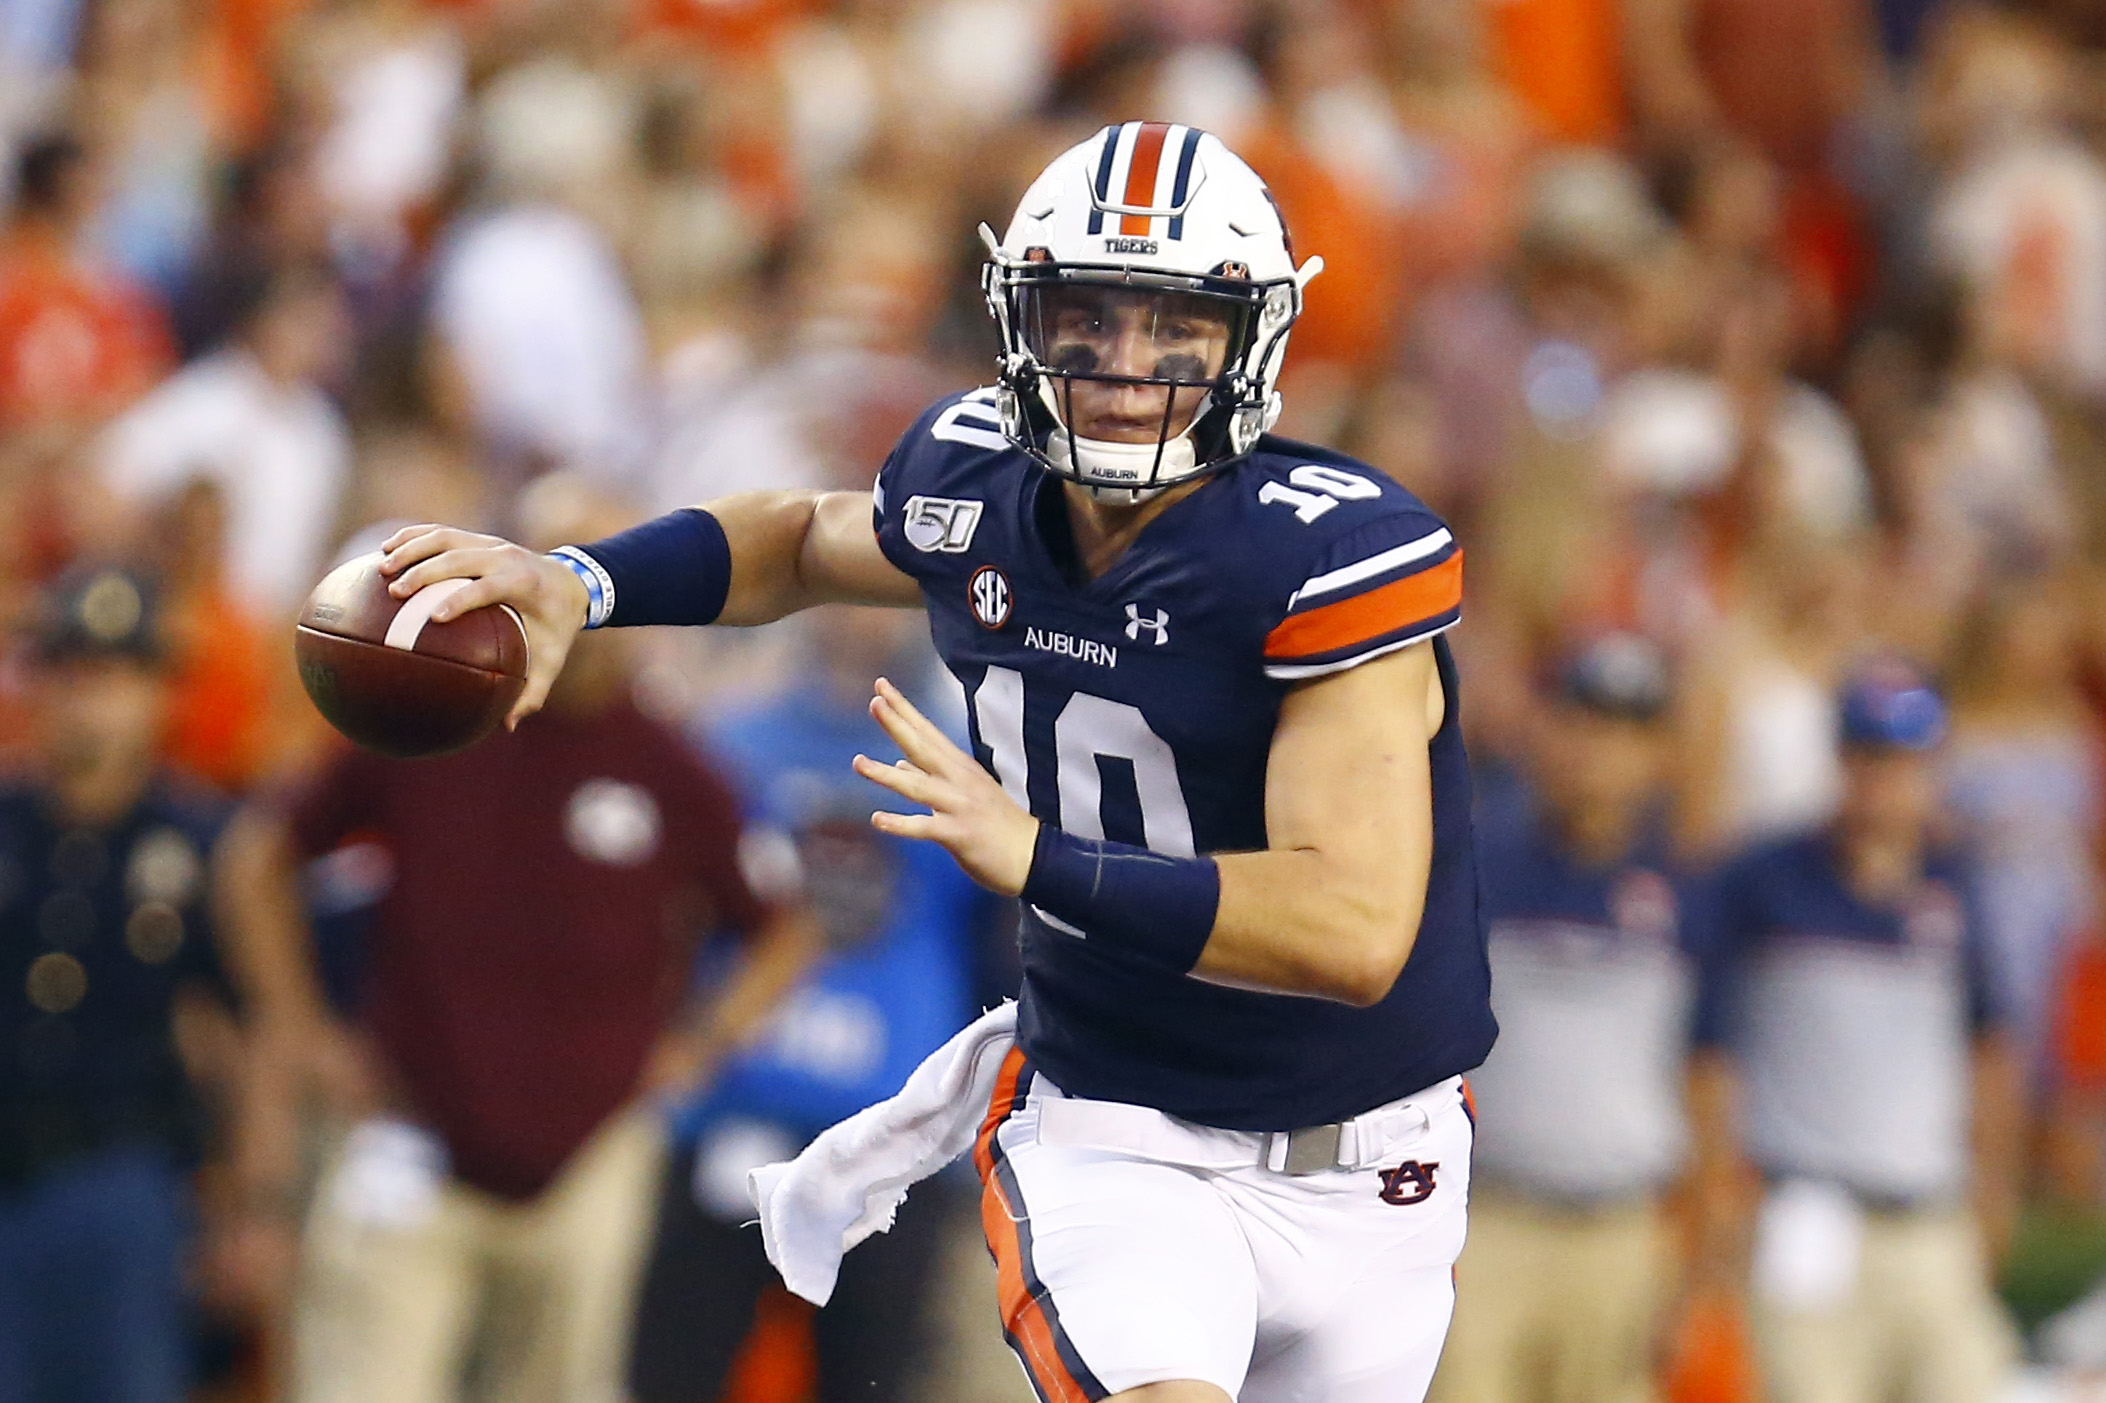 Auburn rests up for Hogs